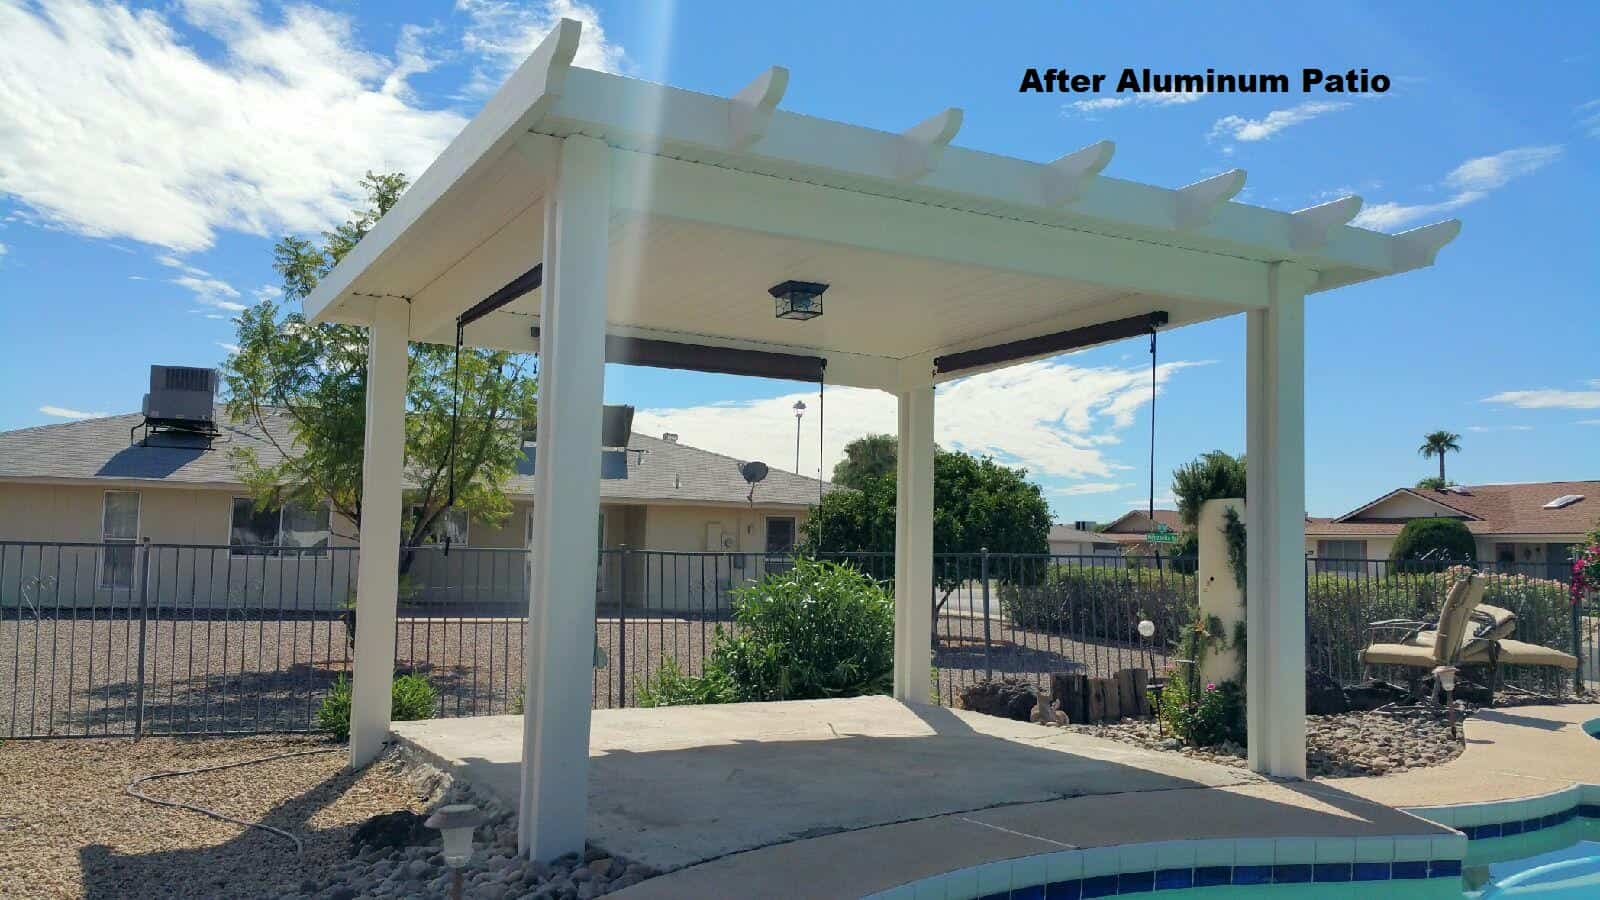 A large aluminum patio